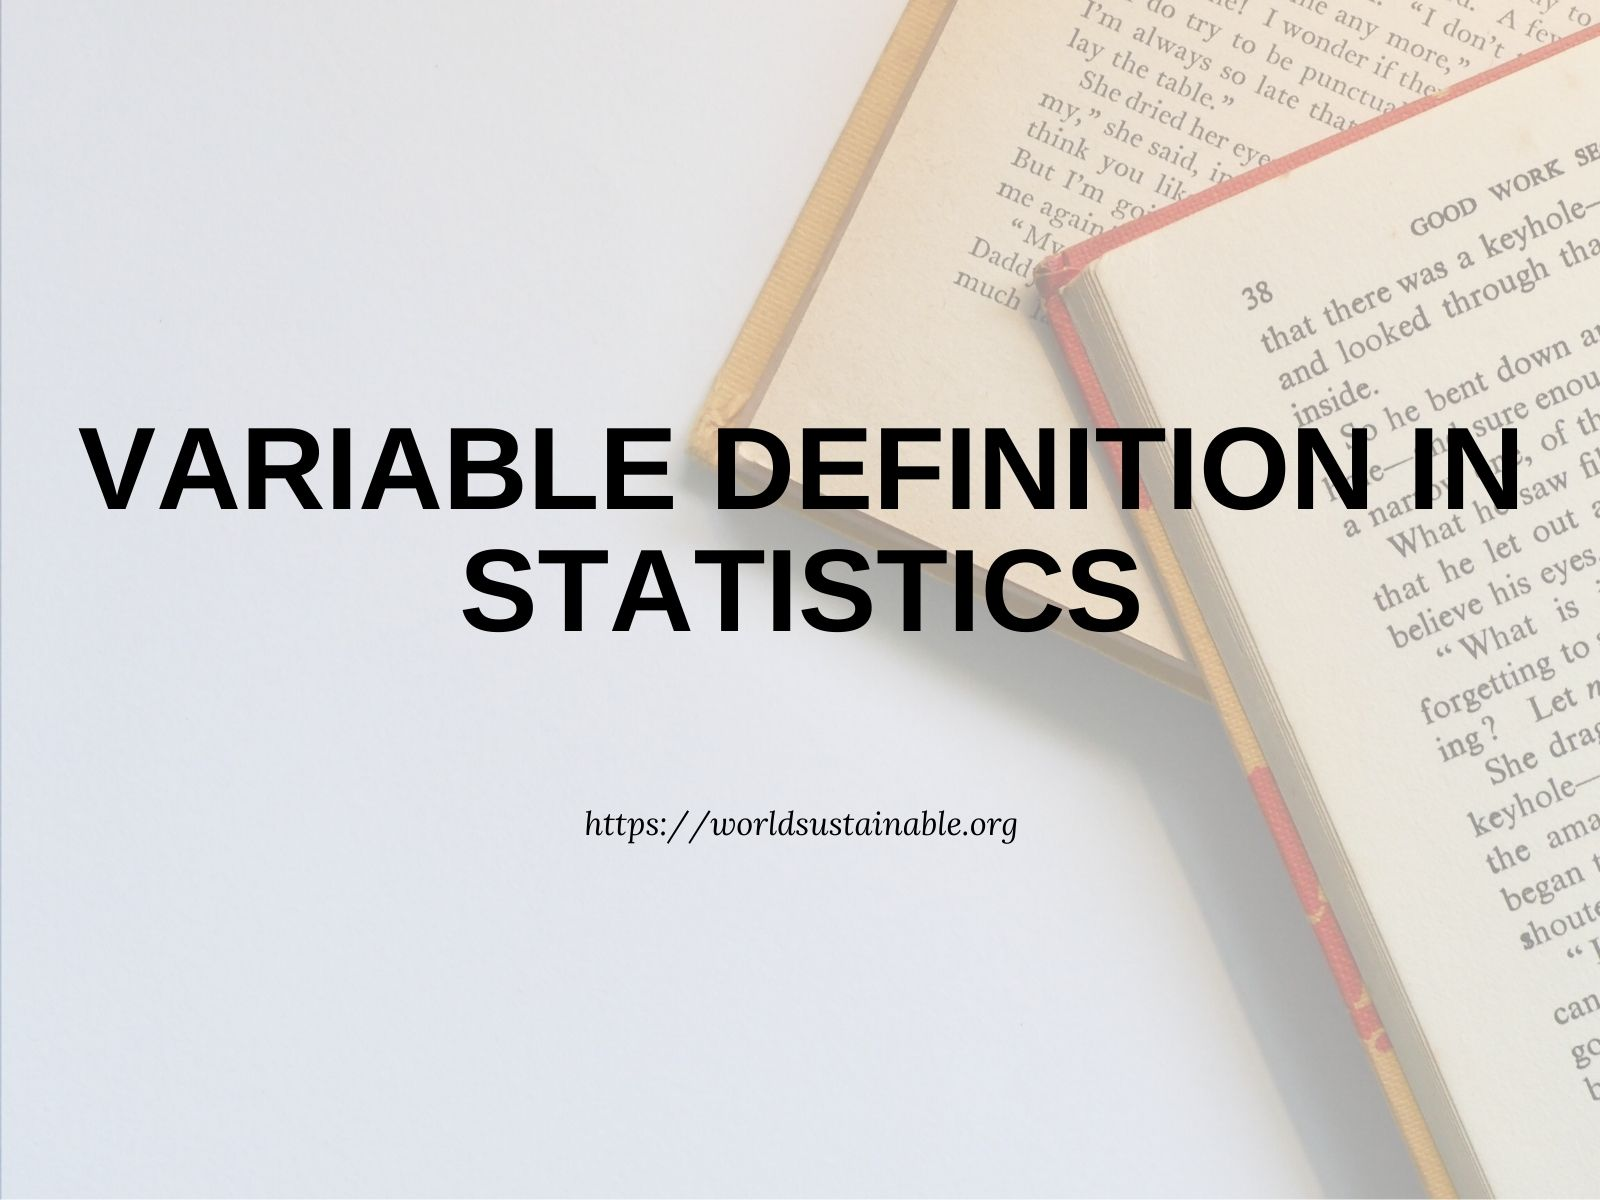 the-variable-definition-in-statistics